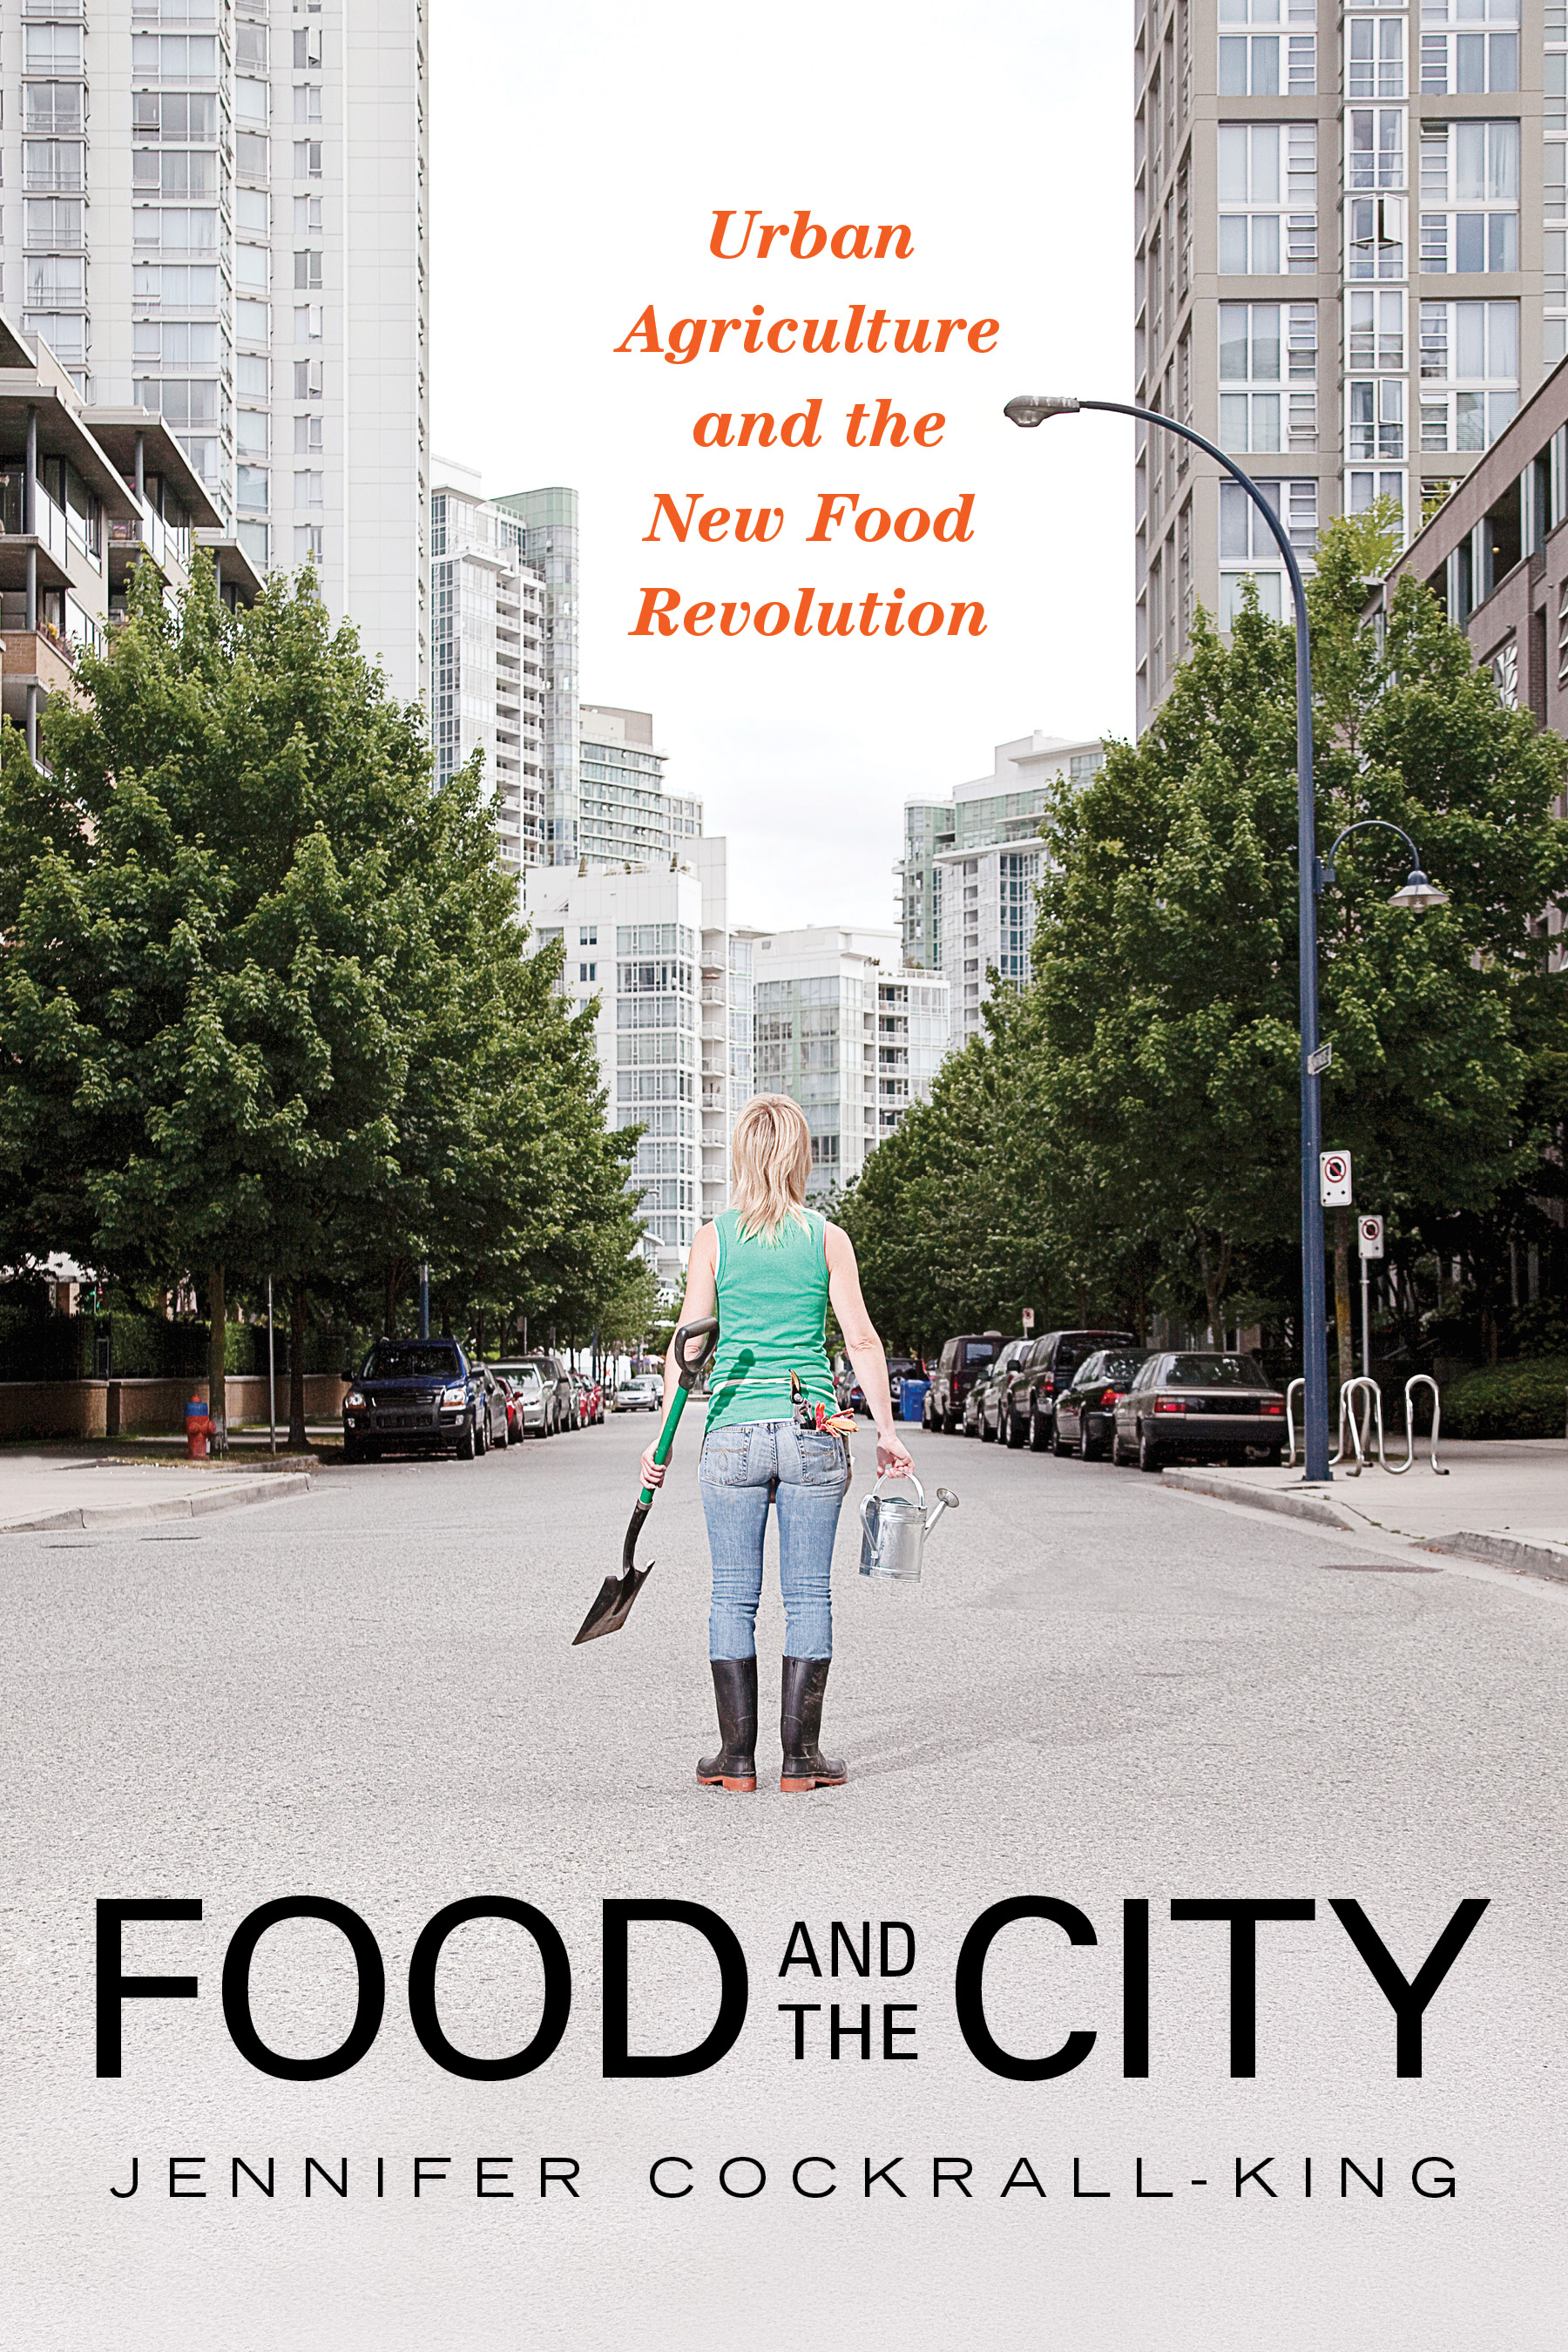 Urban Agriculture and the New Food Revolution